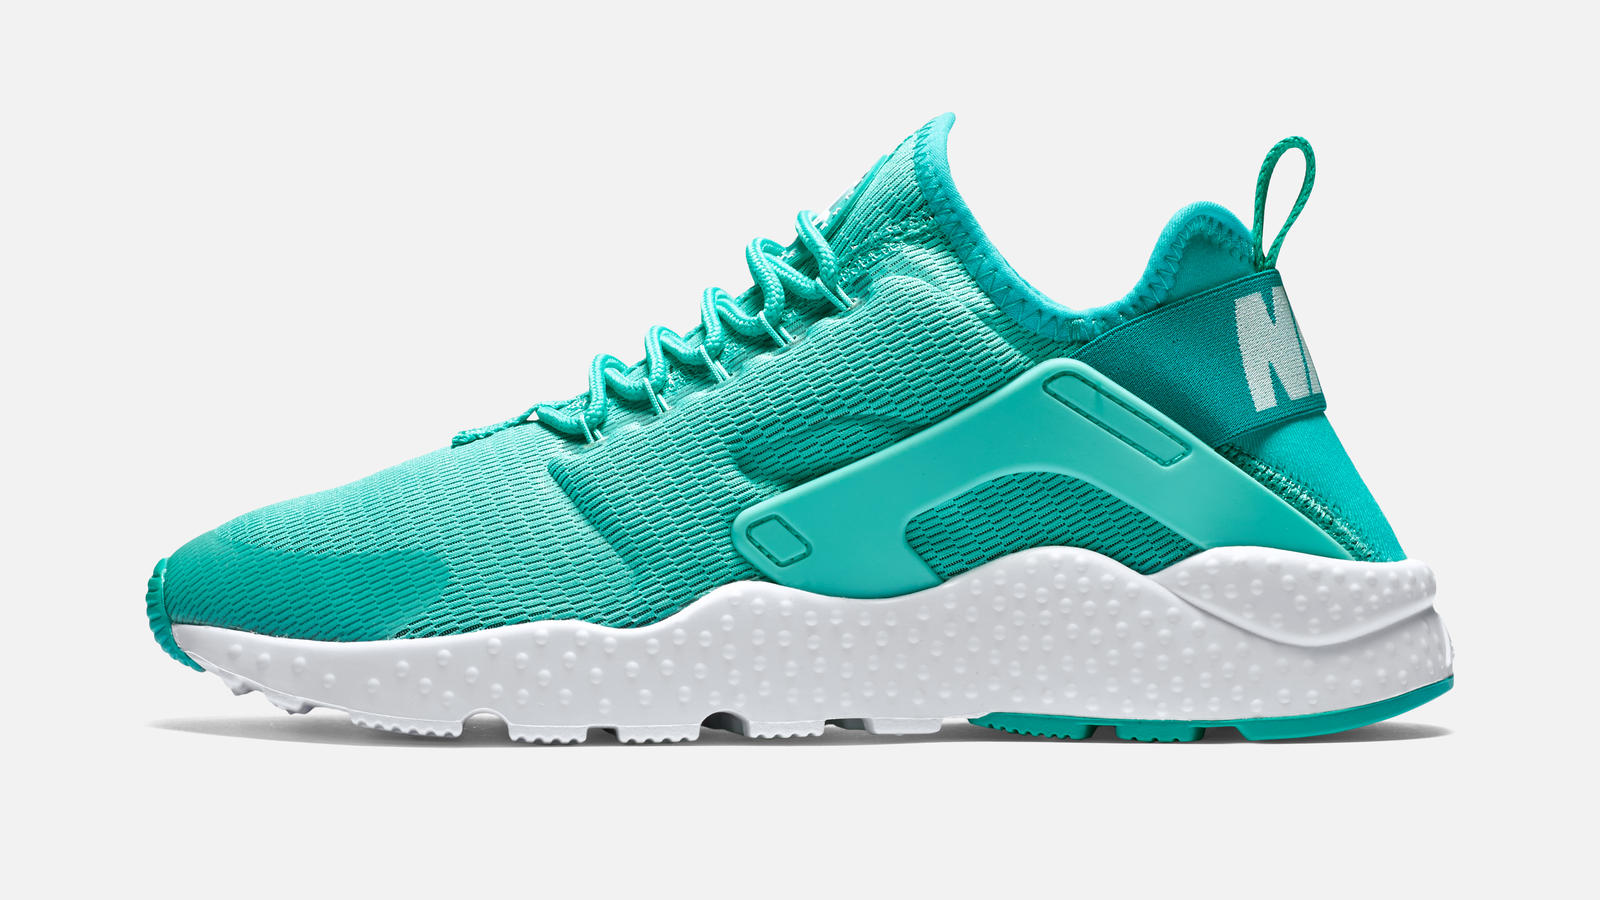 lámpara sobresalir perderse  nike air huarache original Online Shopping for Women, Men, Kids Fashion &  Lifestyle|Free Delivery & Returns